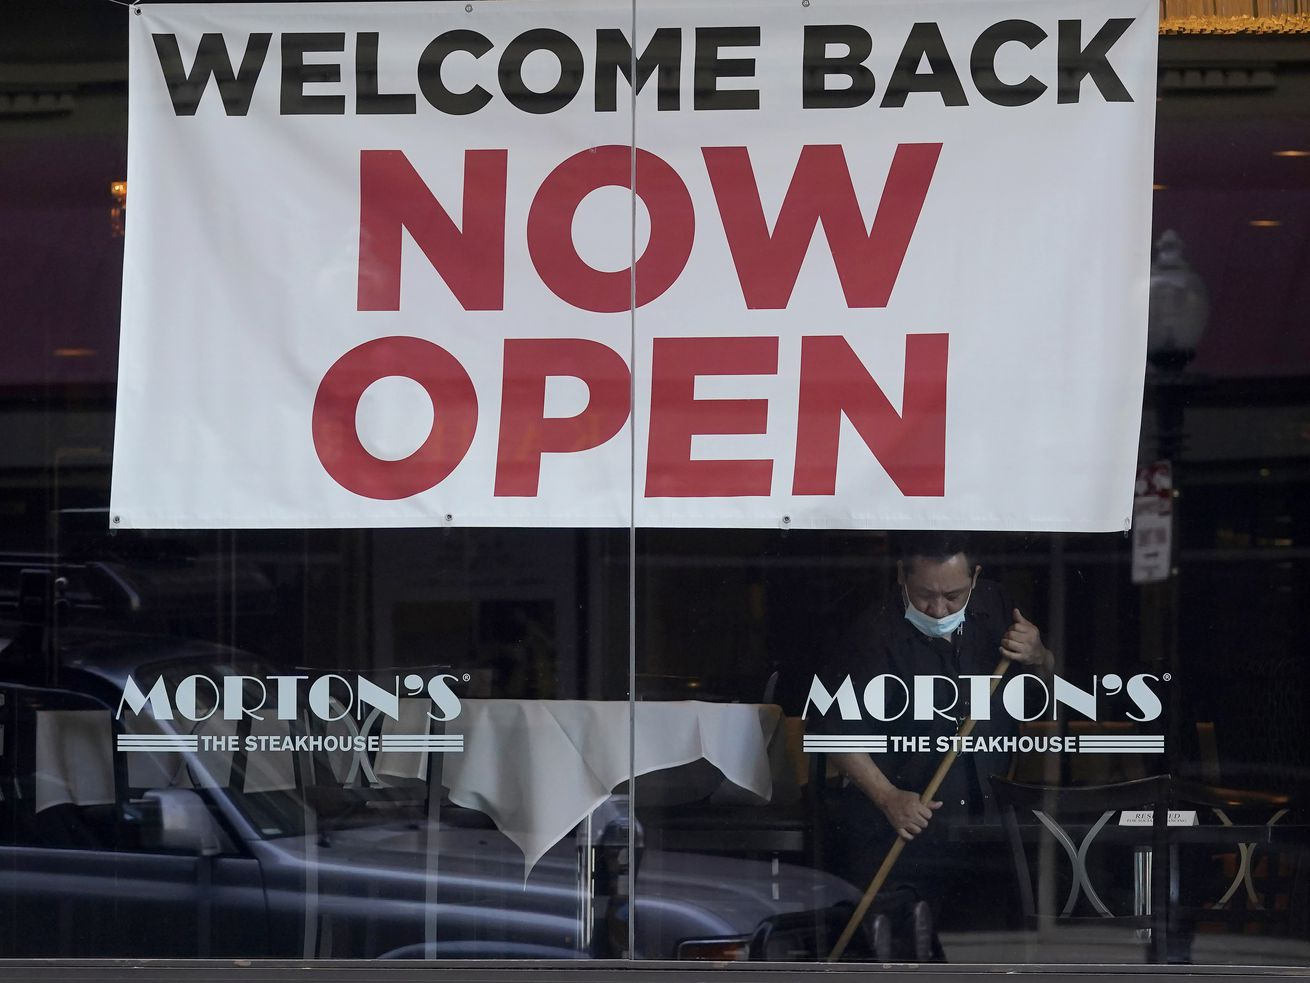 """In this March 4, 2021, file photo, a sign reading """"Welcome Back Now Open"""" is posted on the window of a Morton's Steakhouse restaurant as a man works inside during the coronavirus pandemic in San Francisco. California added 141,000 jobs in February as more than a quarter of a million people returned to the workforce. The California Employment Development Department said Friday, March 26, that the state's unemployment rate in February was 8.5%, down from 9% in January."""